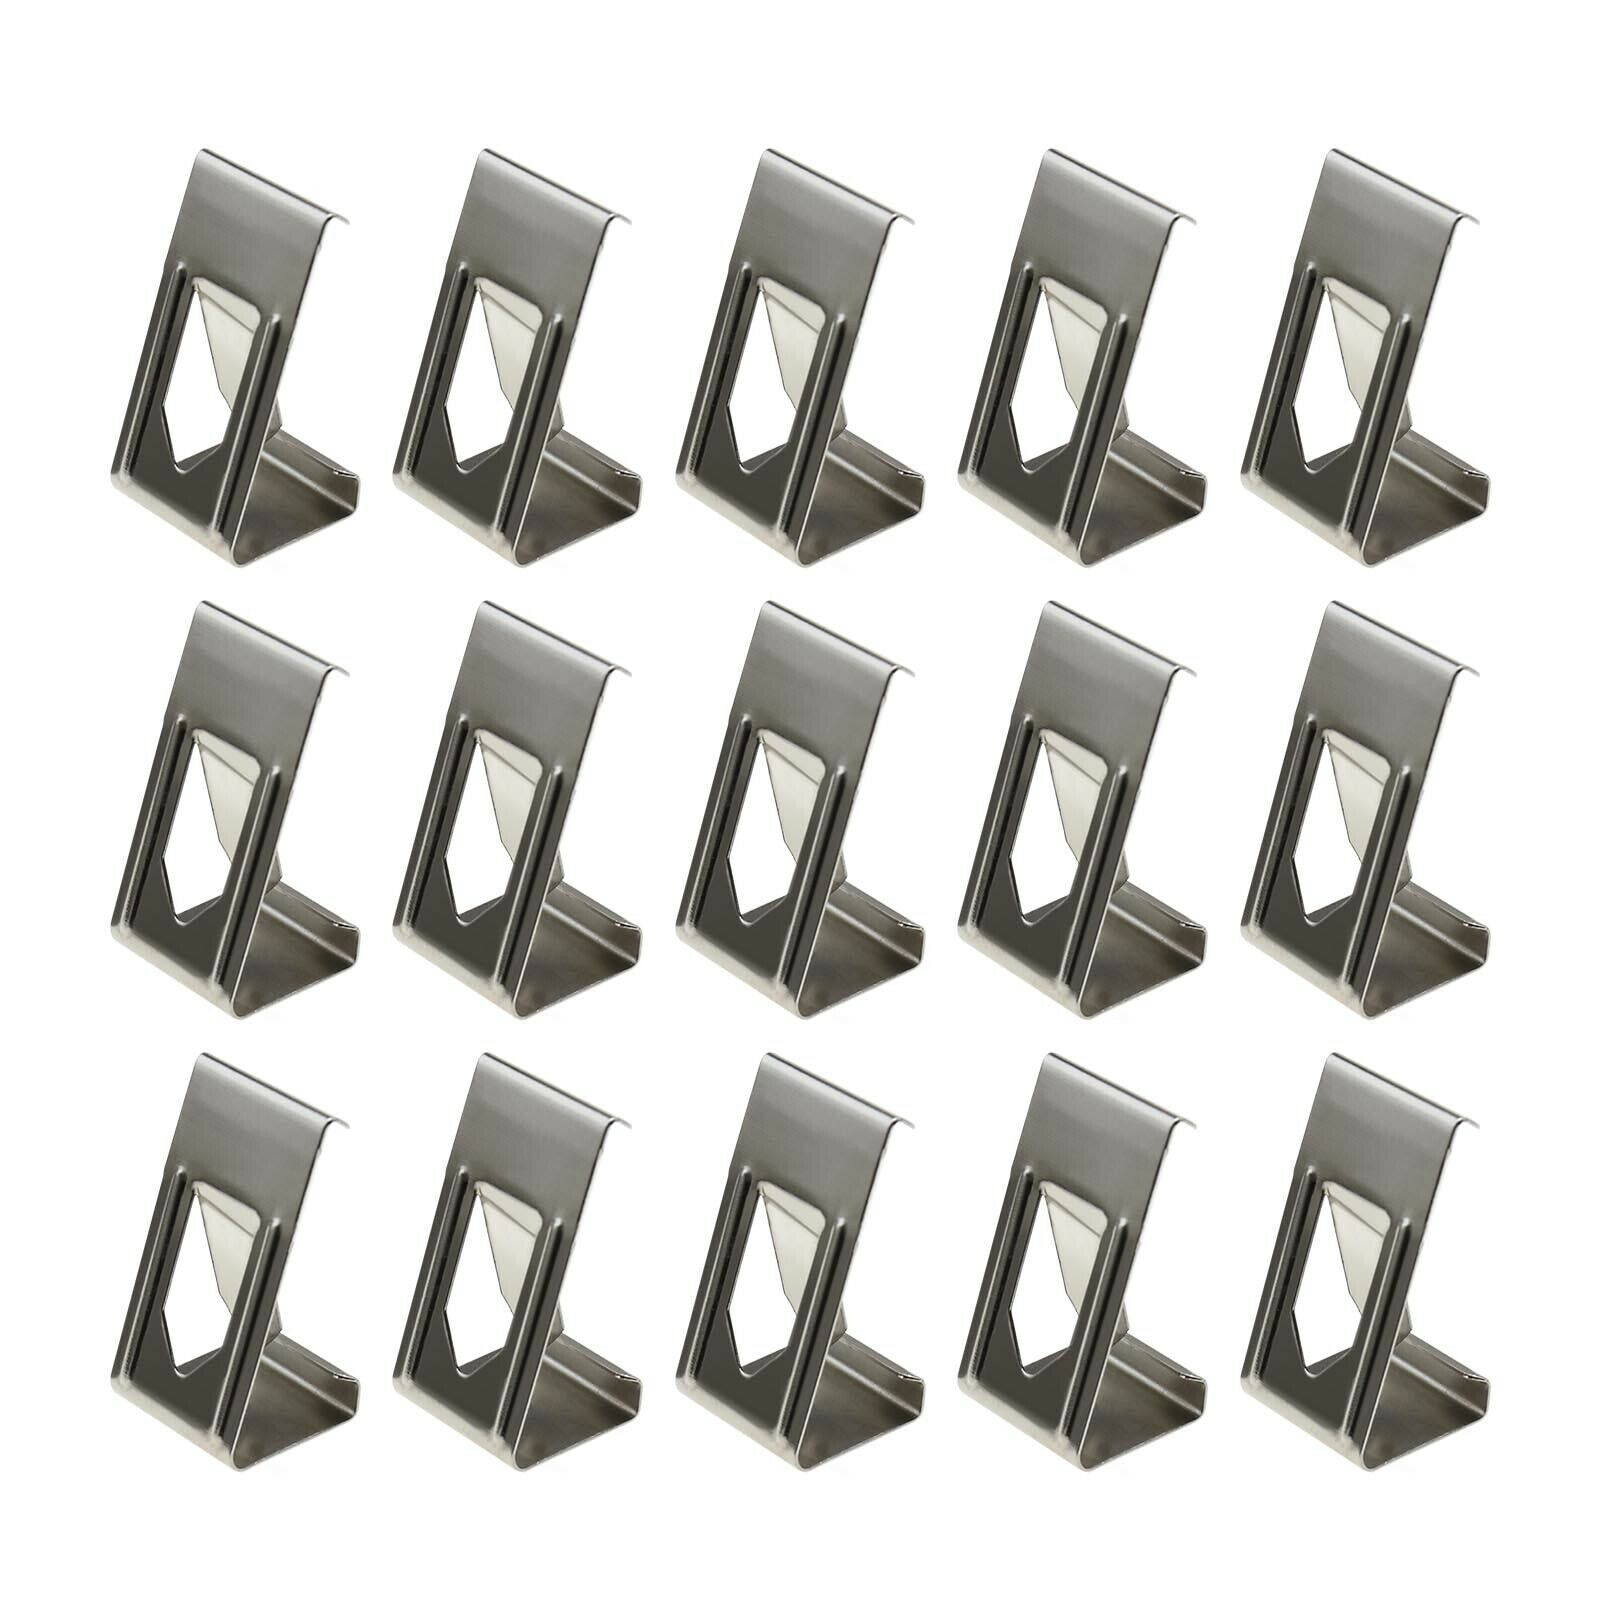 50x/100x 3D Printer Heated Bed Securing Clips Holder Metal Spring Turn Clamps